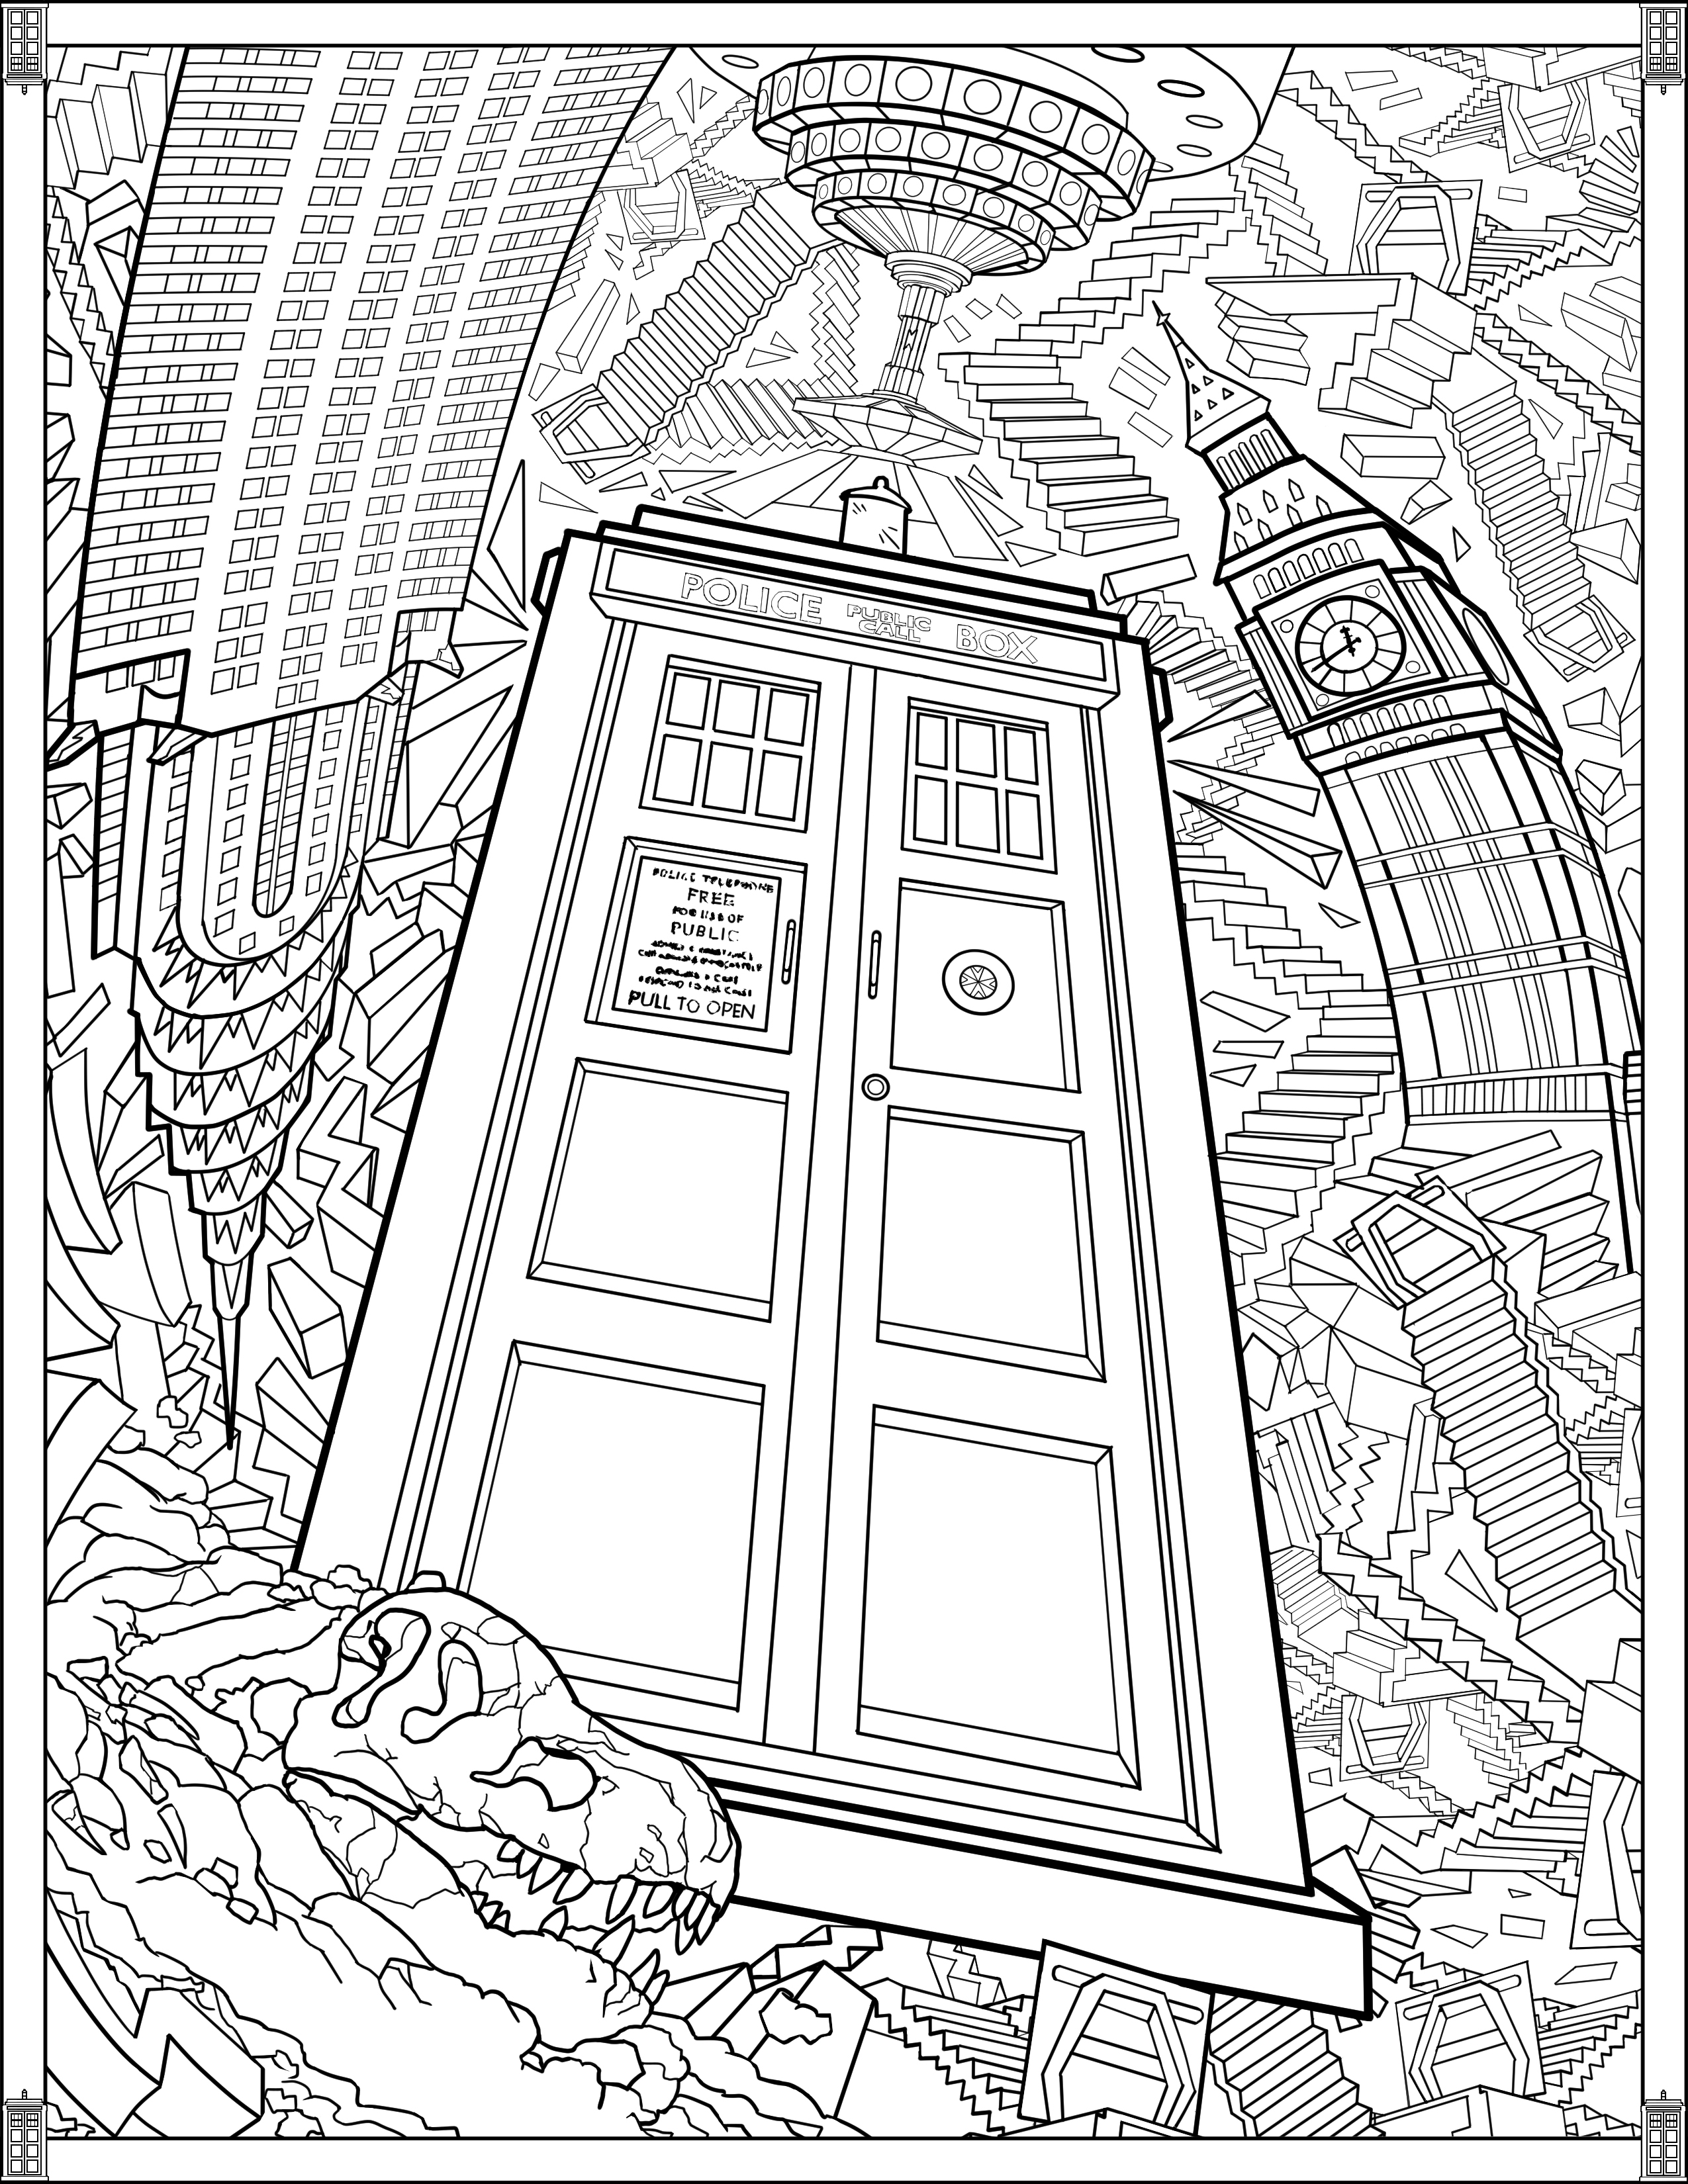 tardis colouring pages tardis vector outline at getdrawings free download pages colouring tardis